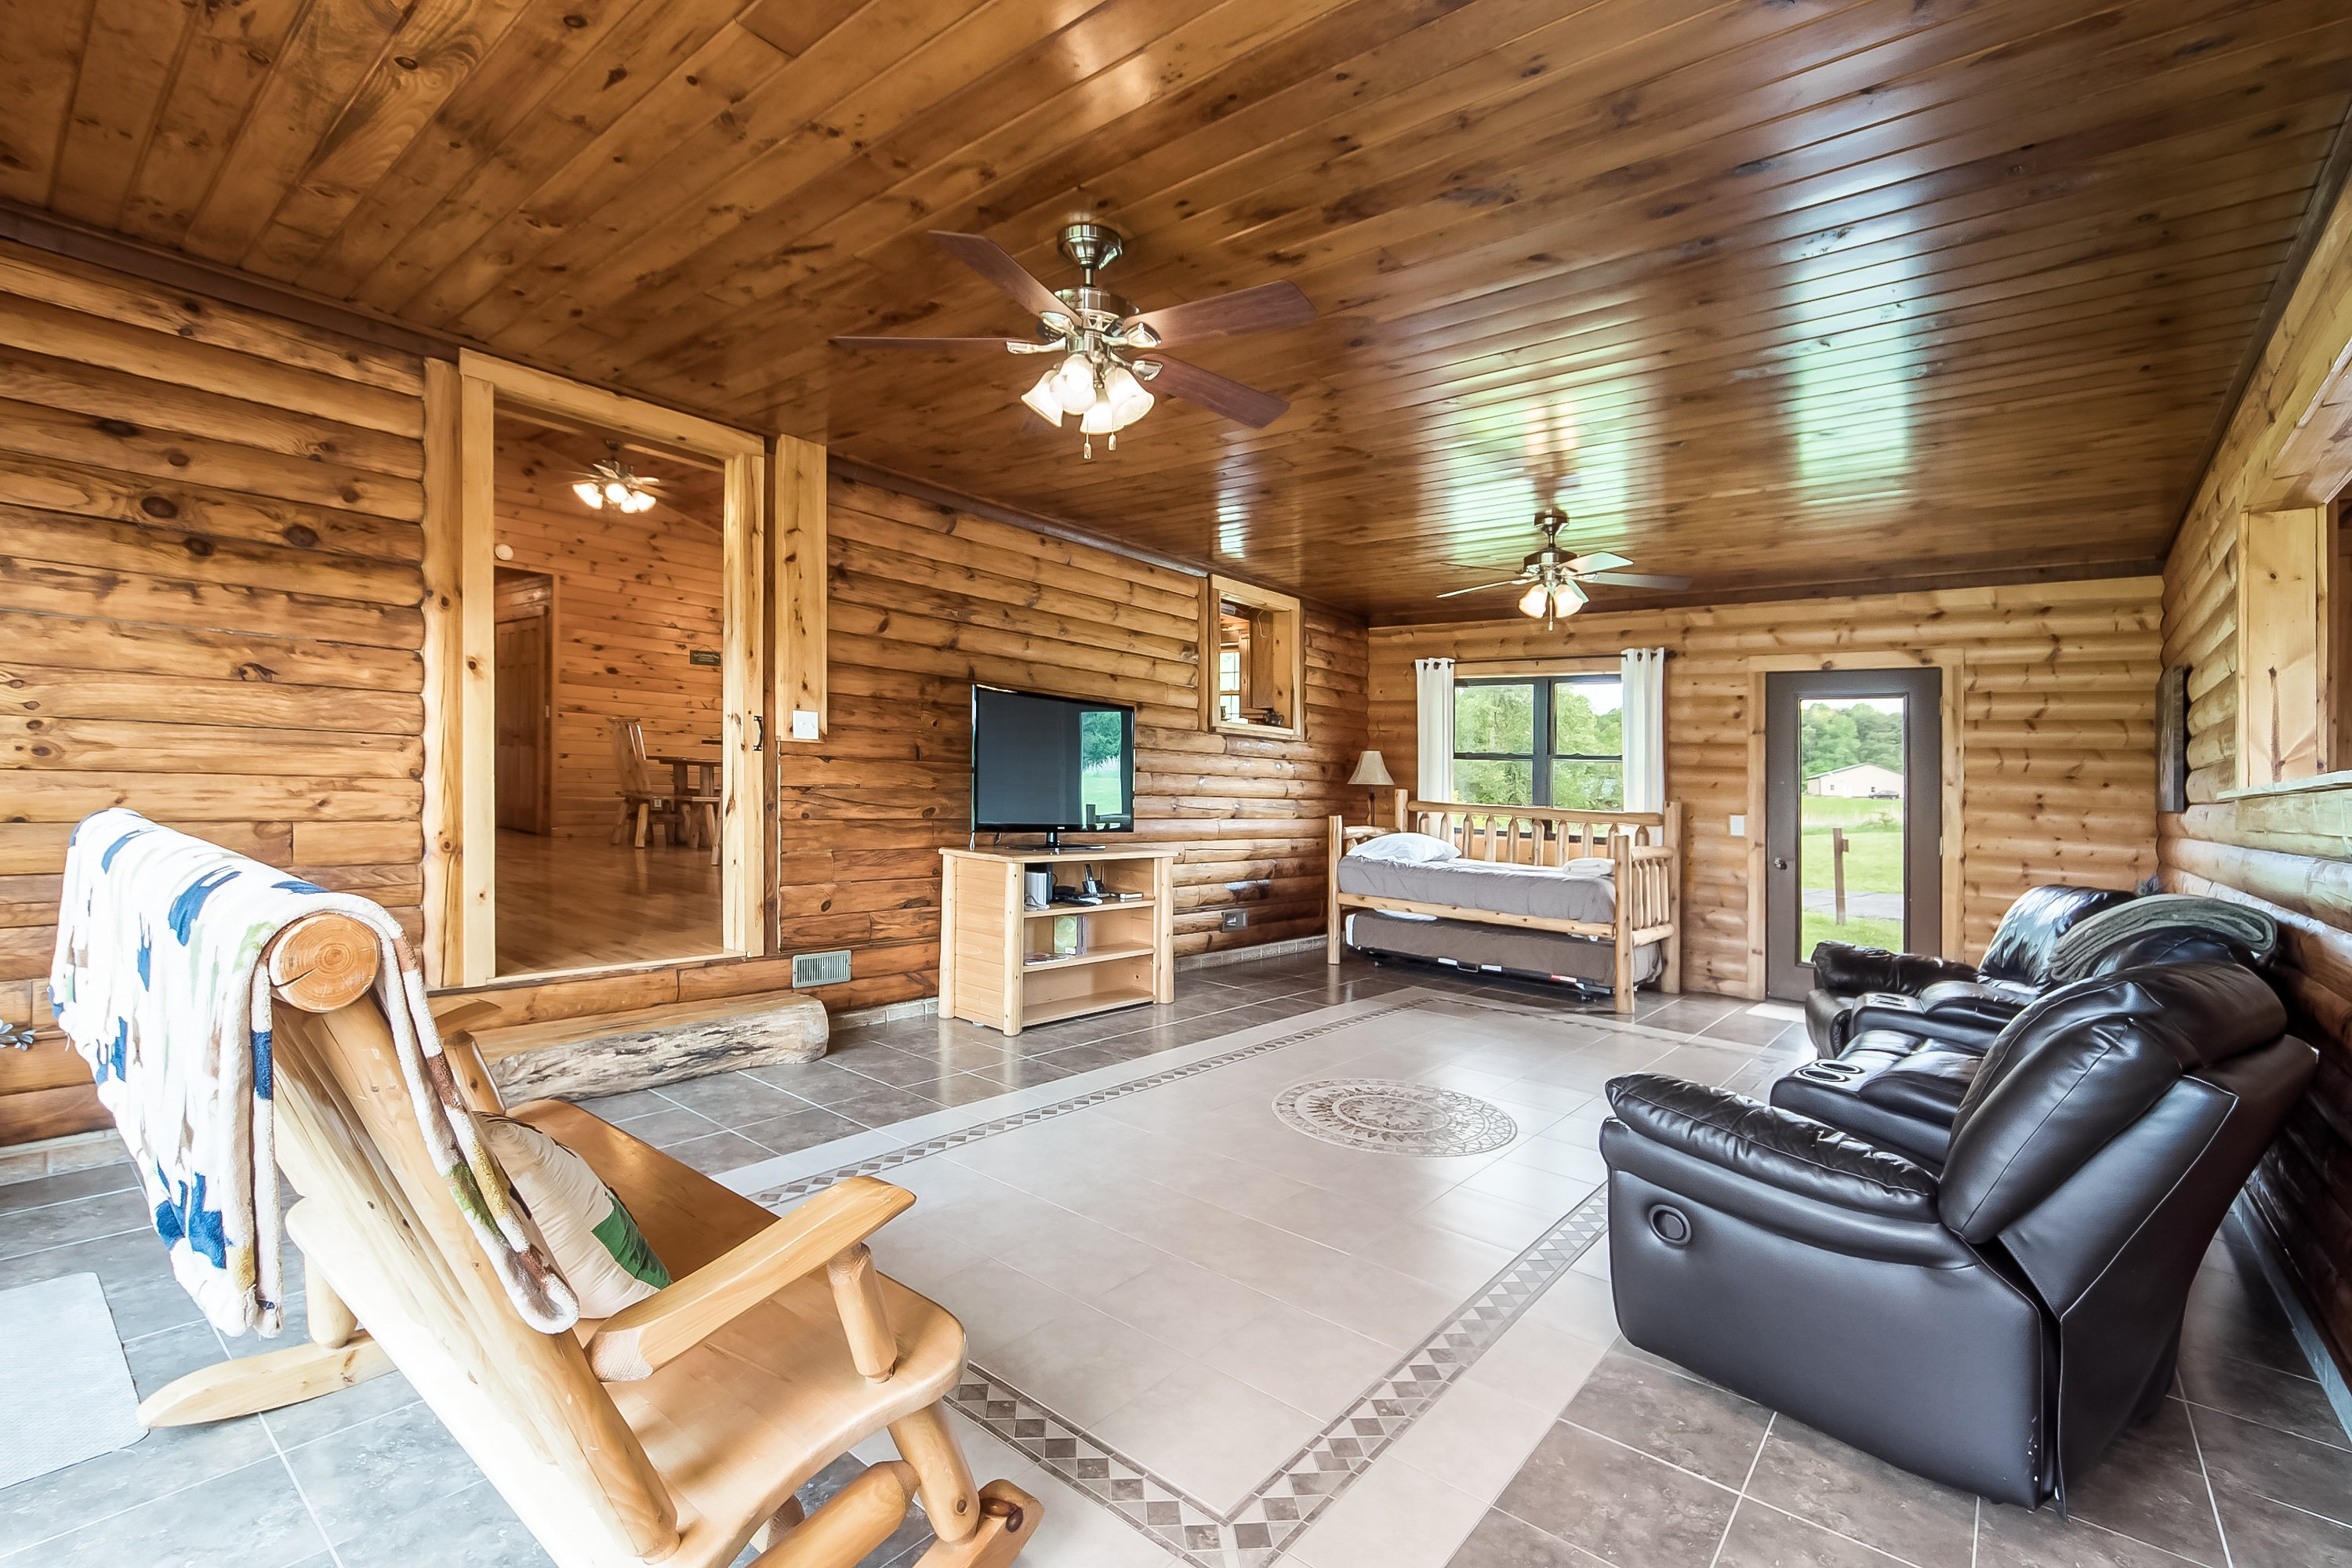 Man boy family cabin retreat